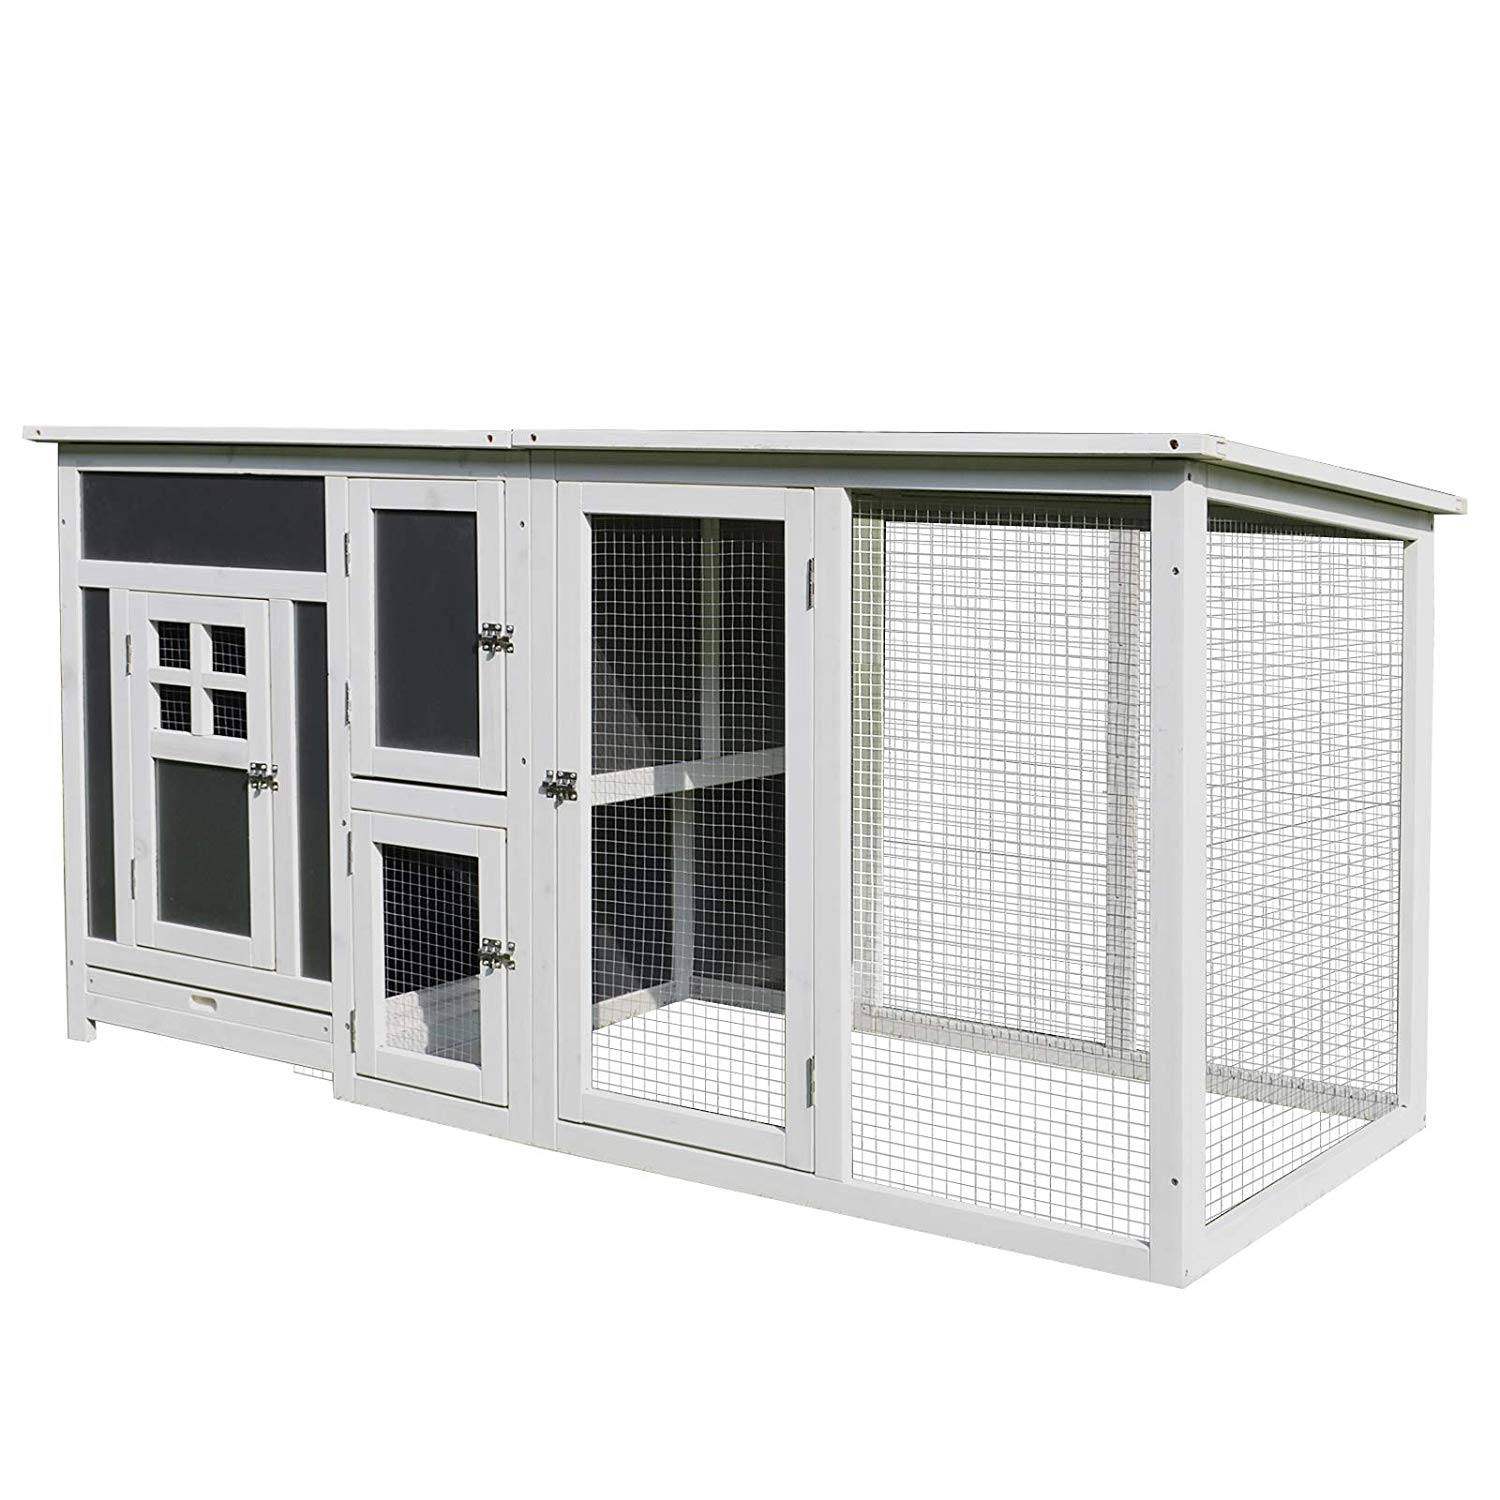 32�Wood Large Indoor Outdoor Chicken Coop with Run& Nesting Box - Grey and White